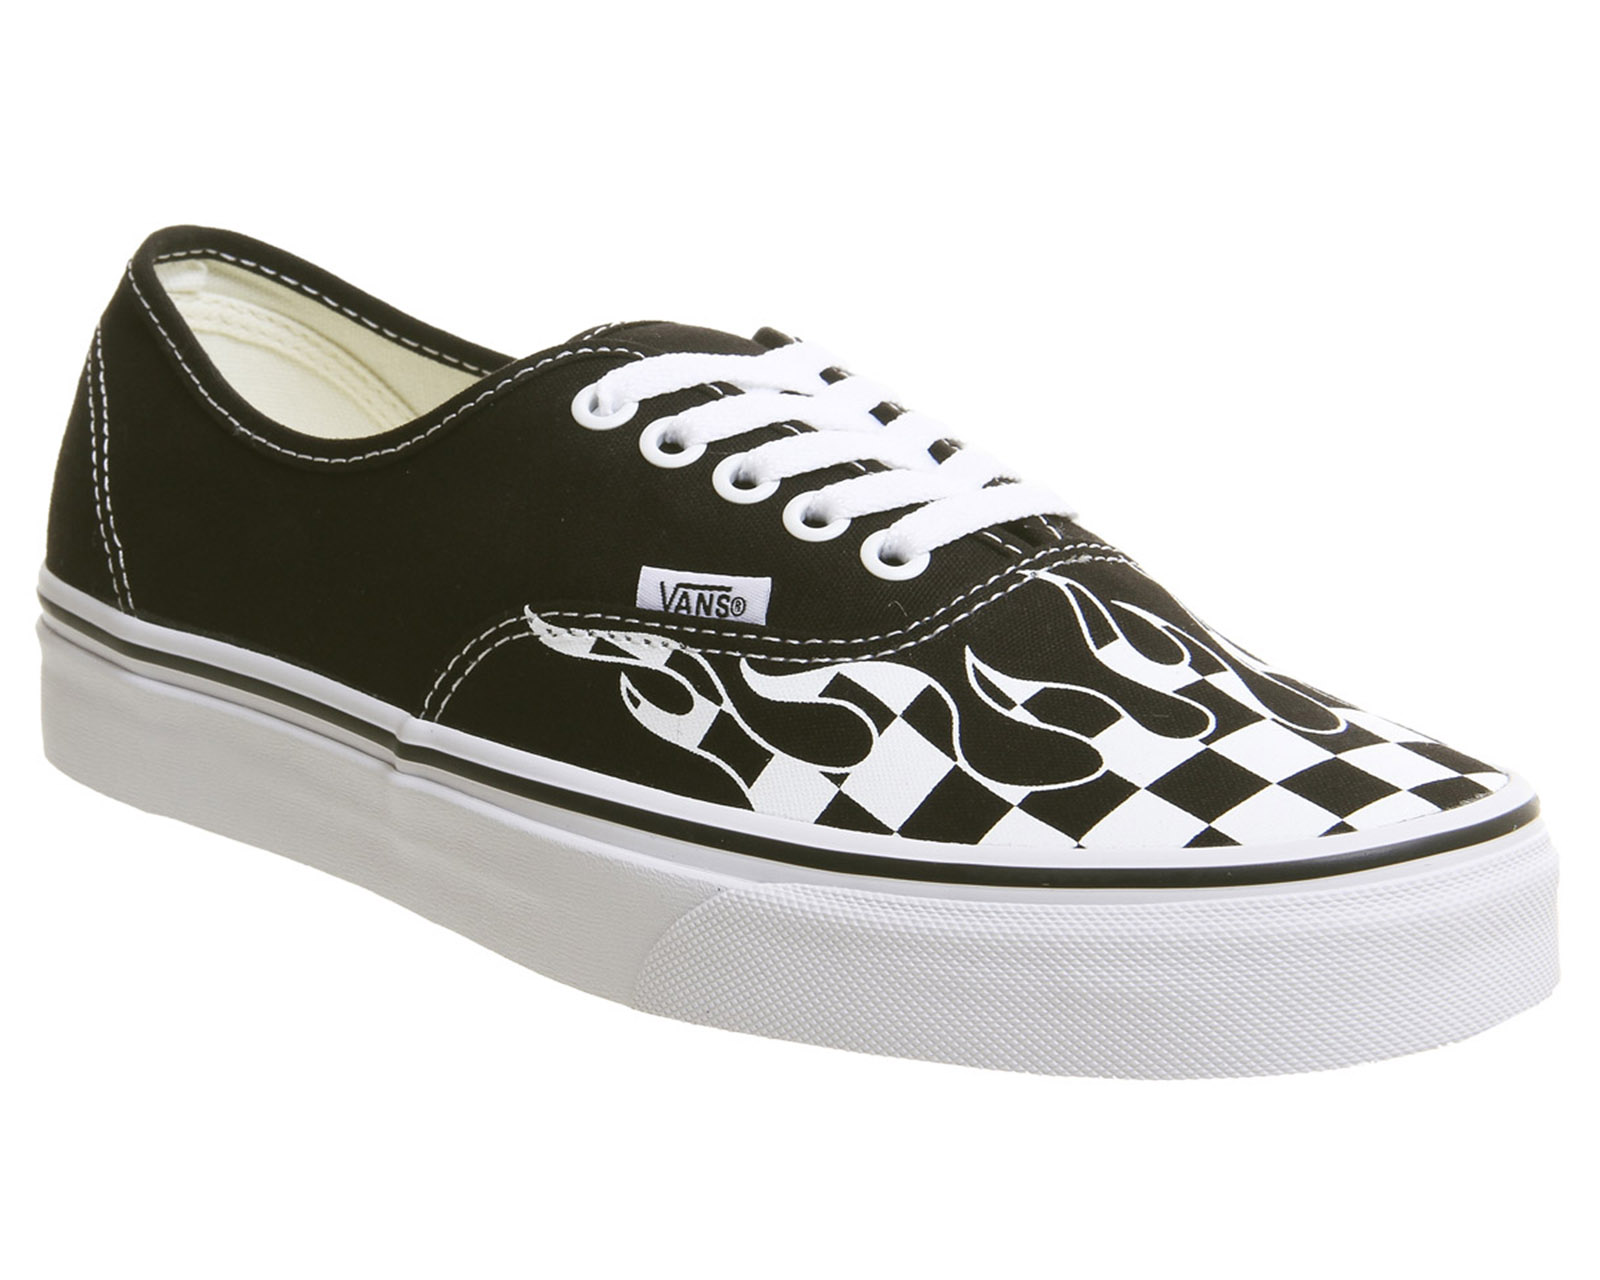 5114818bff Sentinel Mens Vans Authentic Trainers Black True White Check Flame Trainers  Shoes